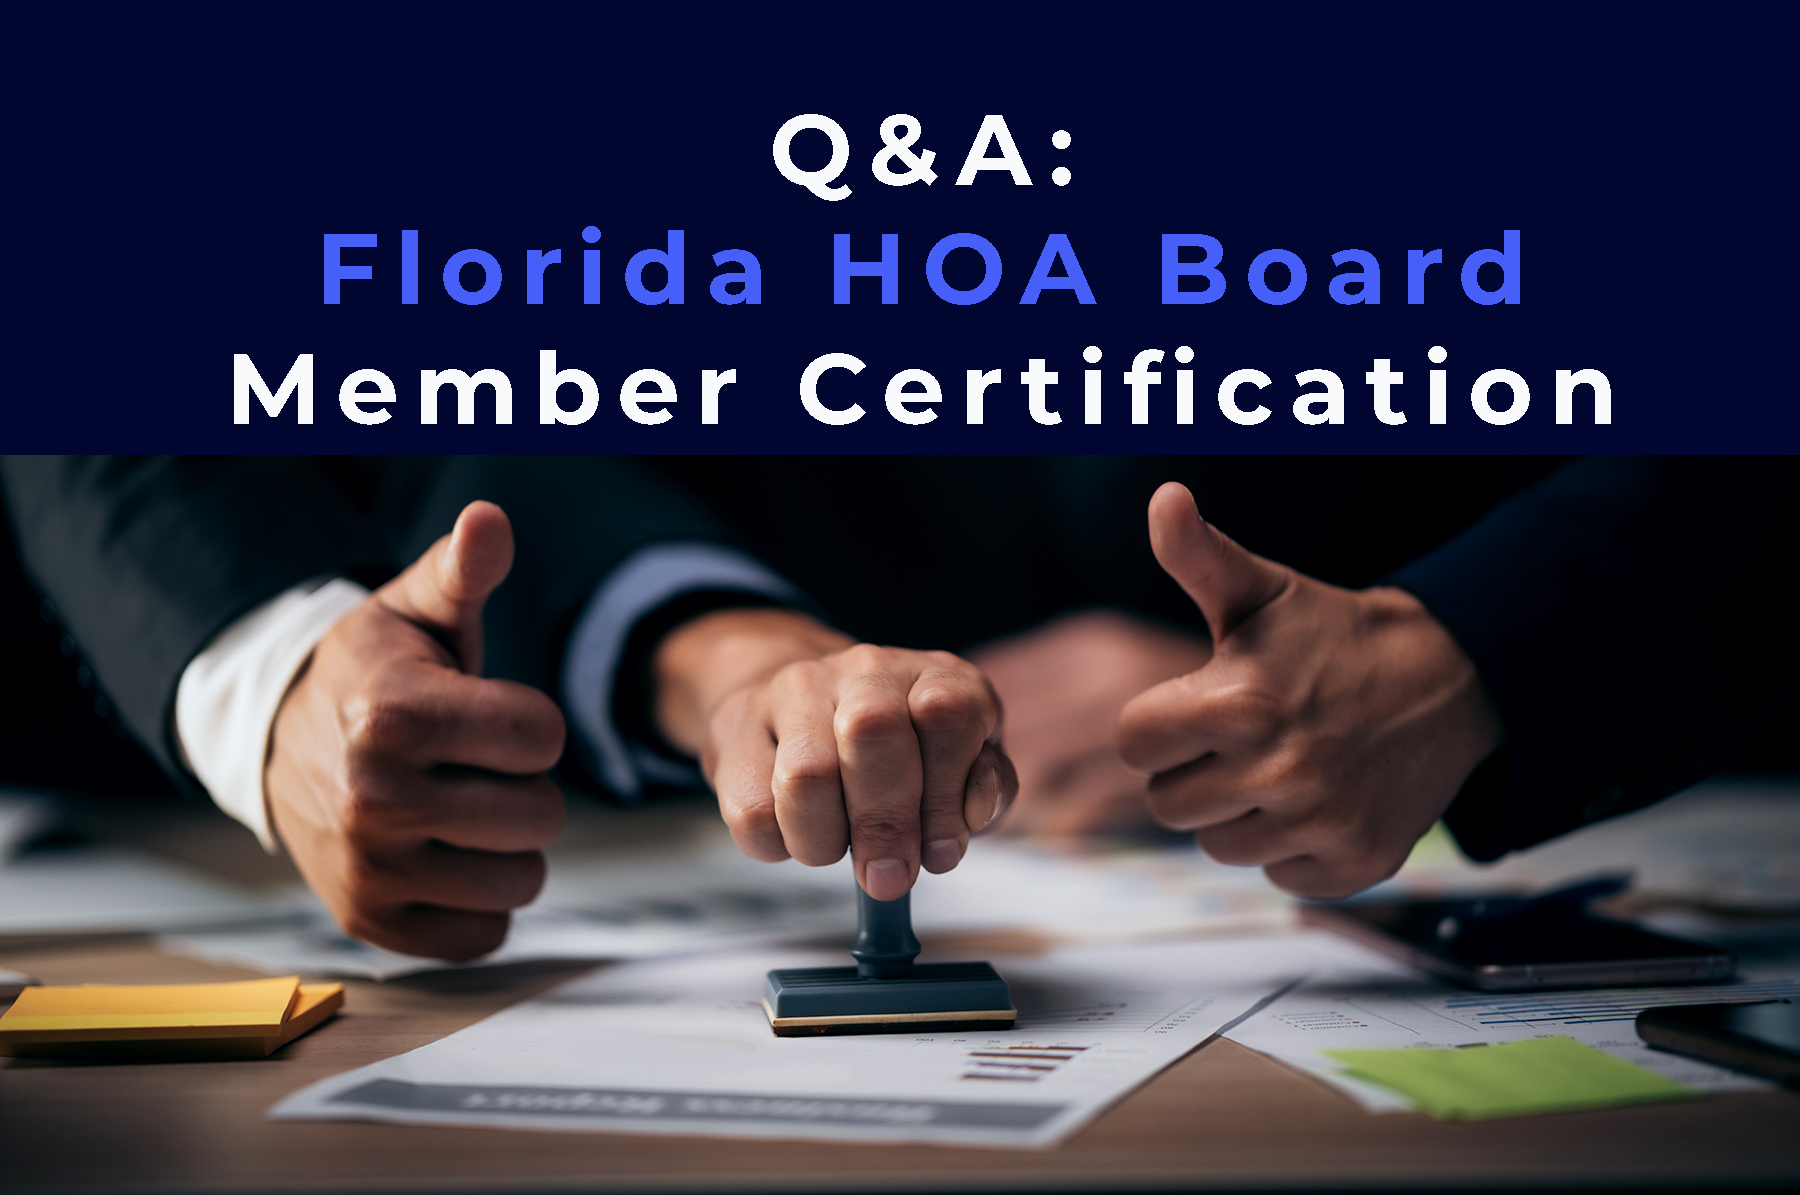 Business approved stamp permit-document-certificate with the phrase Q&A:Florida HOA Board Member Certification